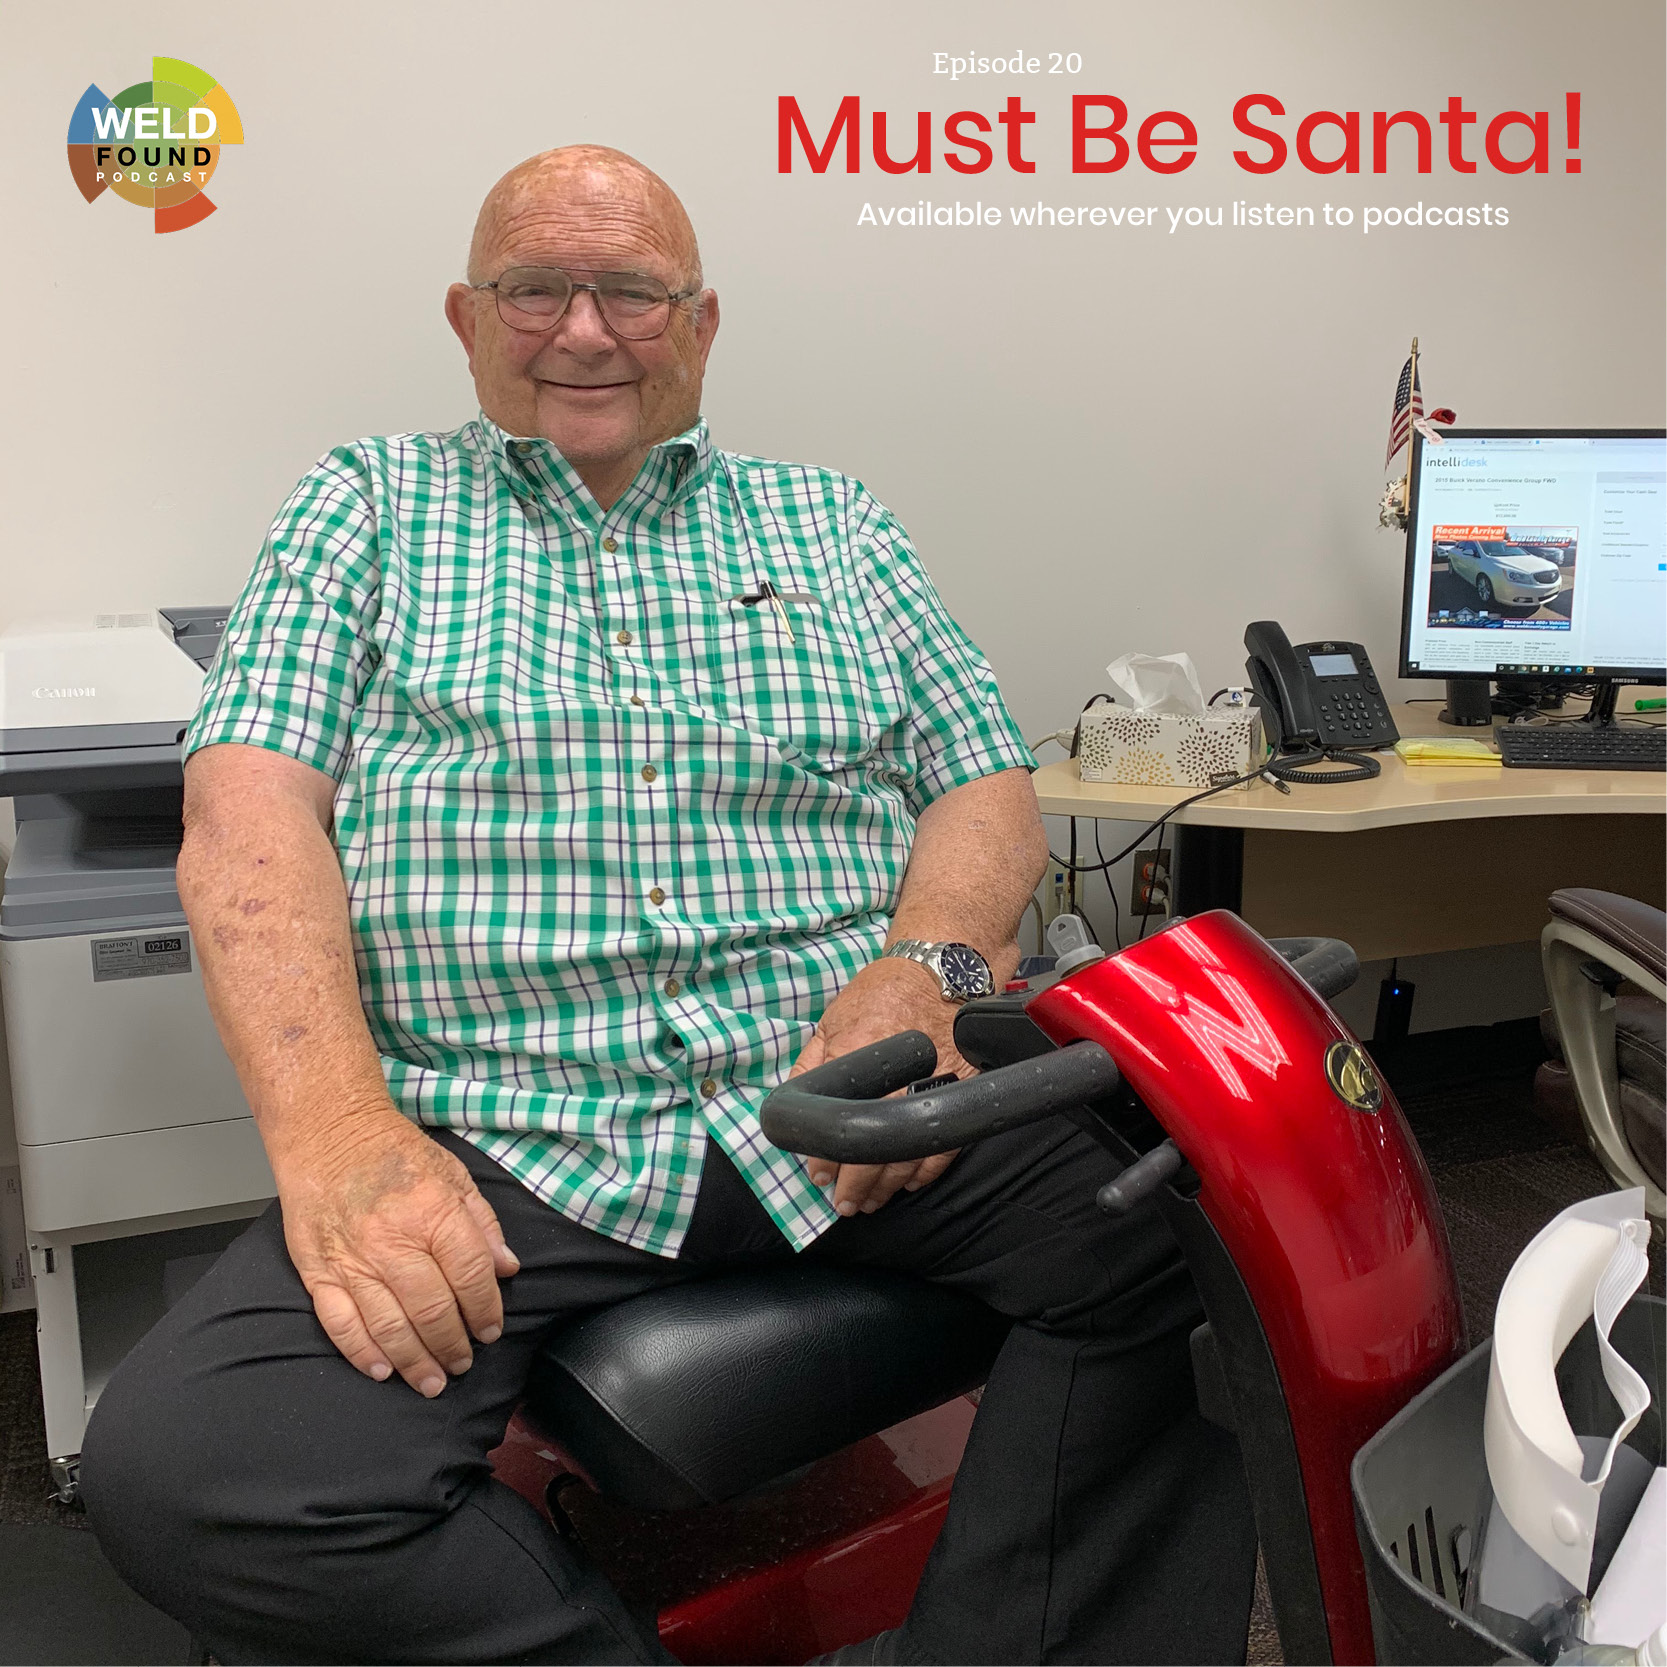 Weld Found Podcast: Must Be Santa